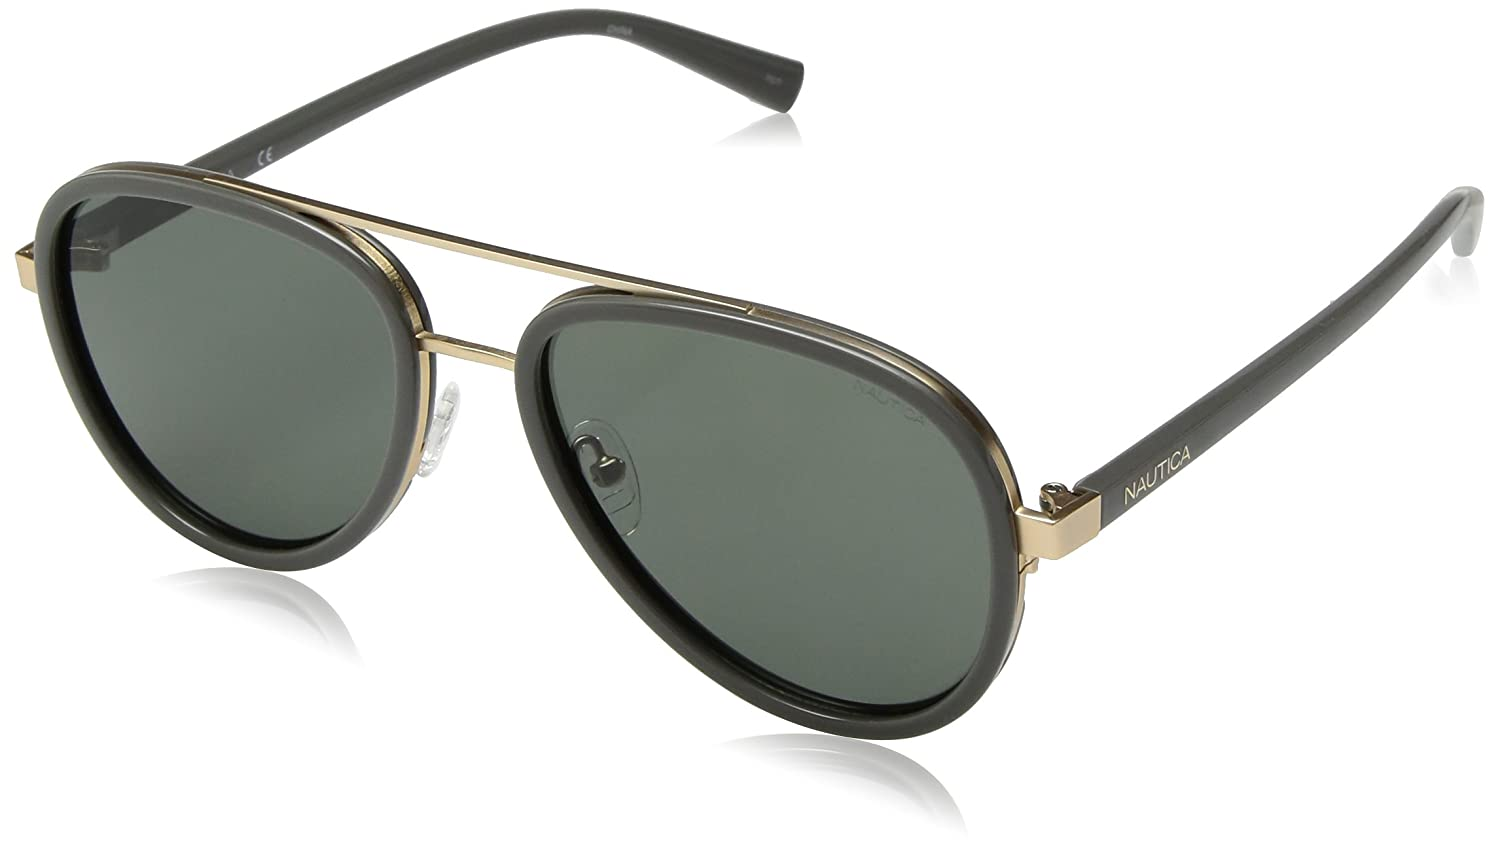 Amazon.com: Nautica n4627sp polarizado Aviator anteojos de ...